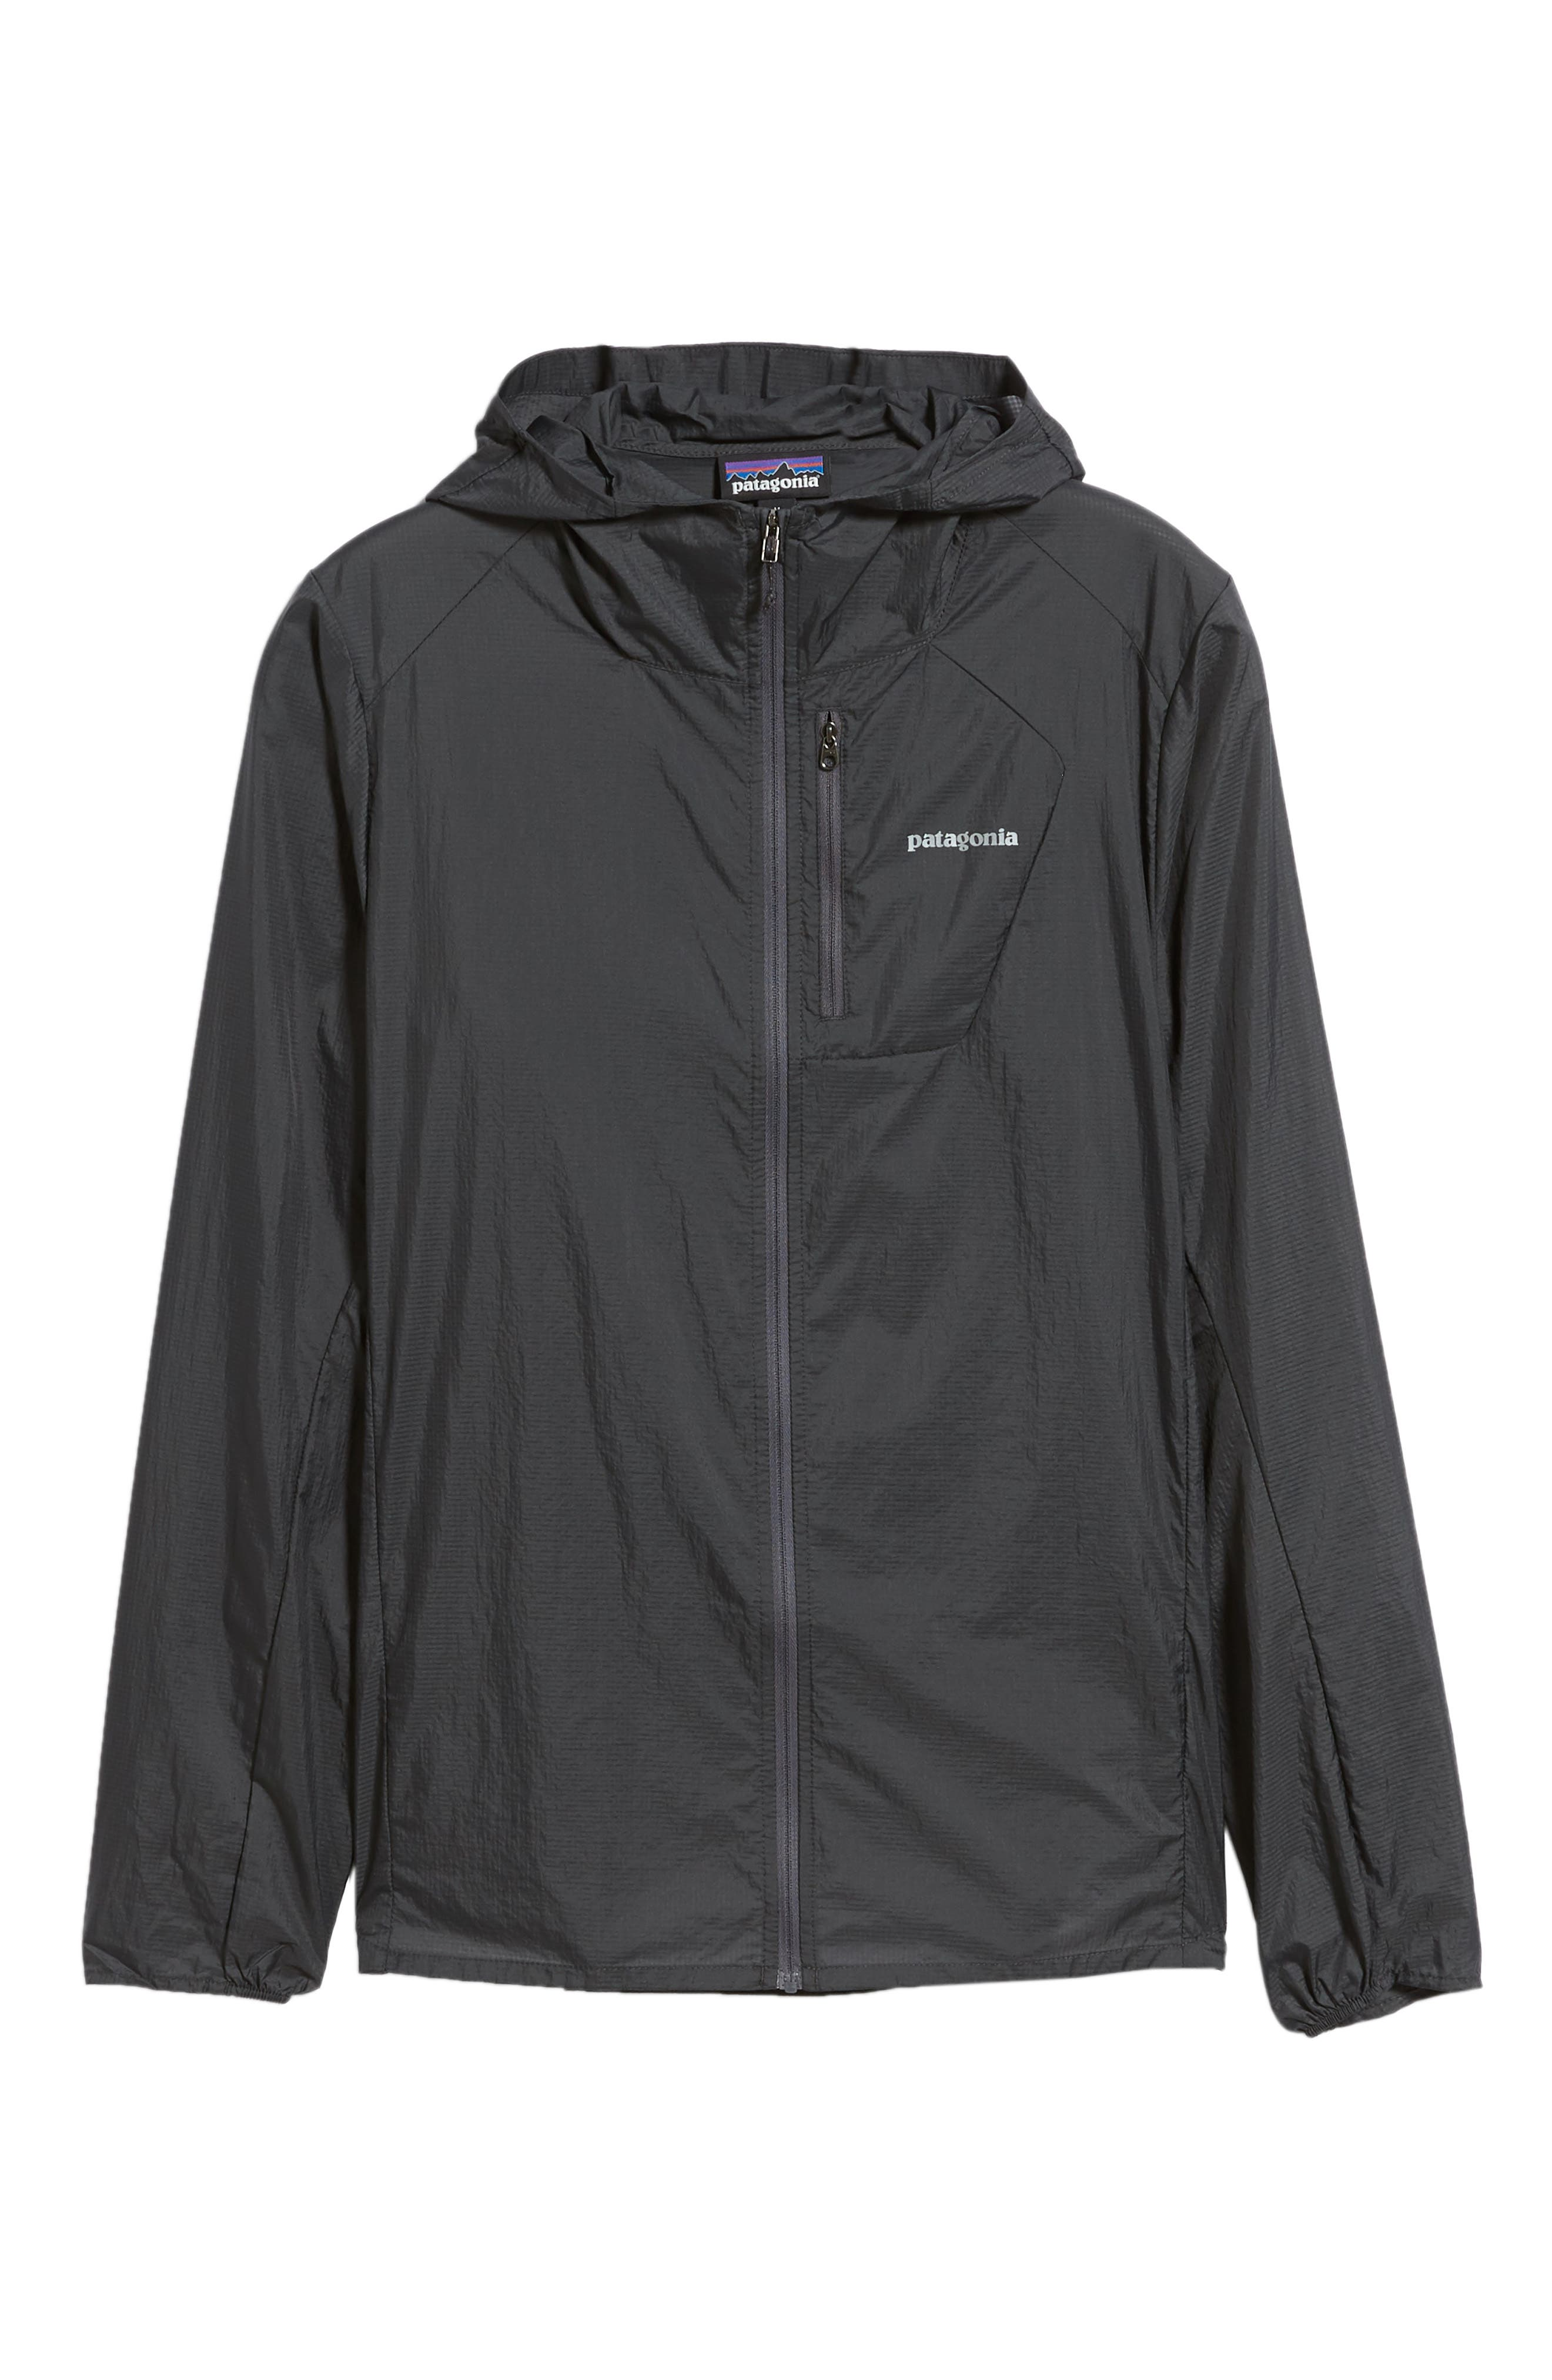 'Houdini' Slim Fit Water Repellent Hooded Jacket,                             Alternate thumbnail 6, color,                             FORGE GREY/ FORGE GREY